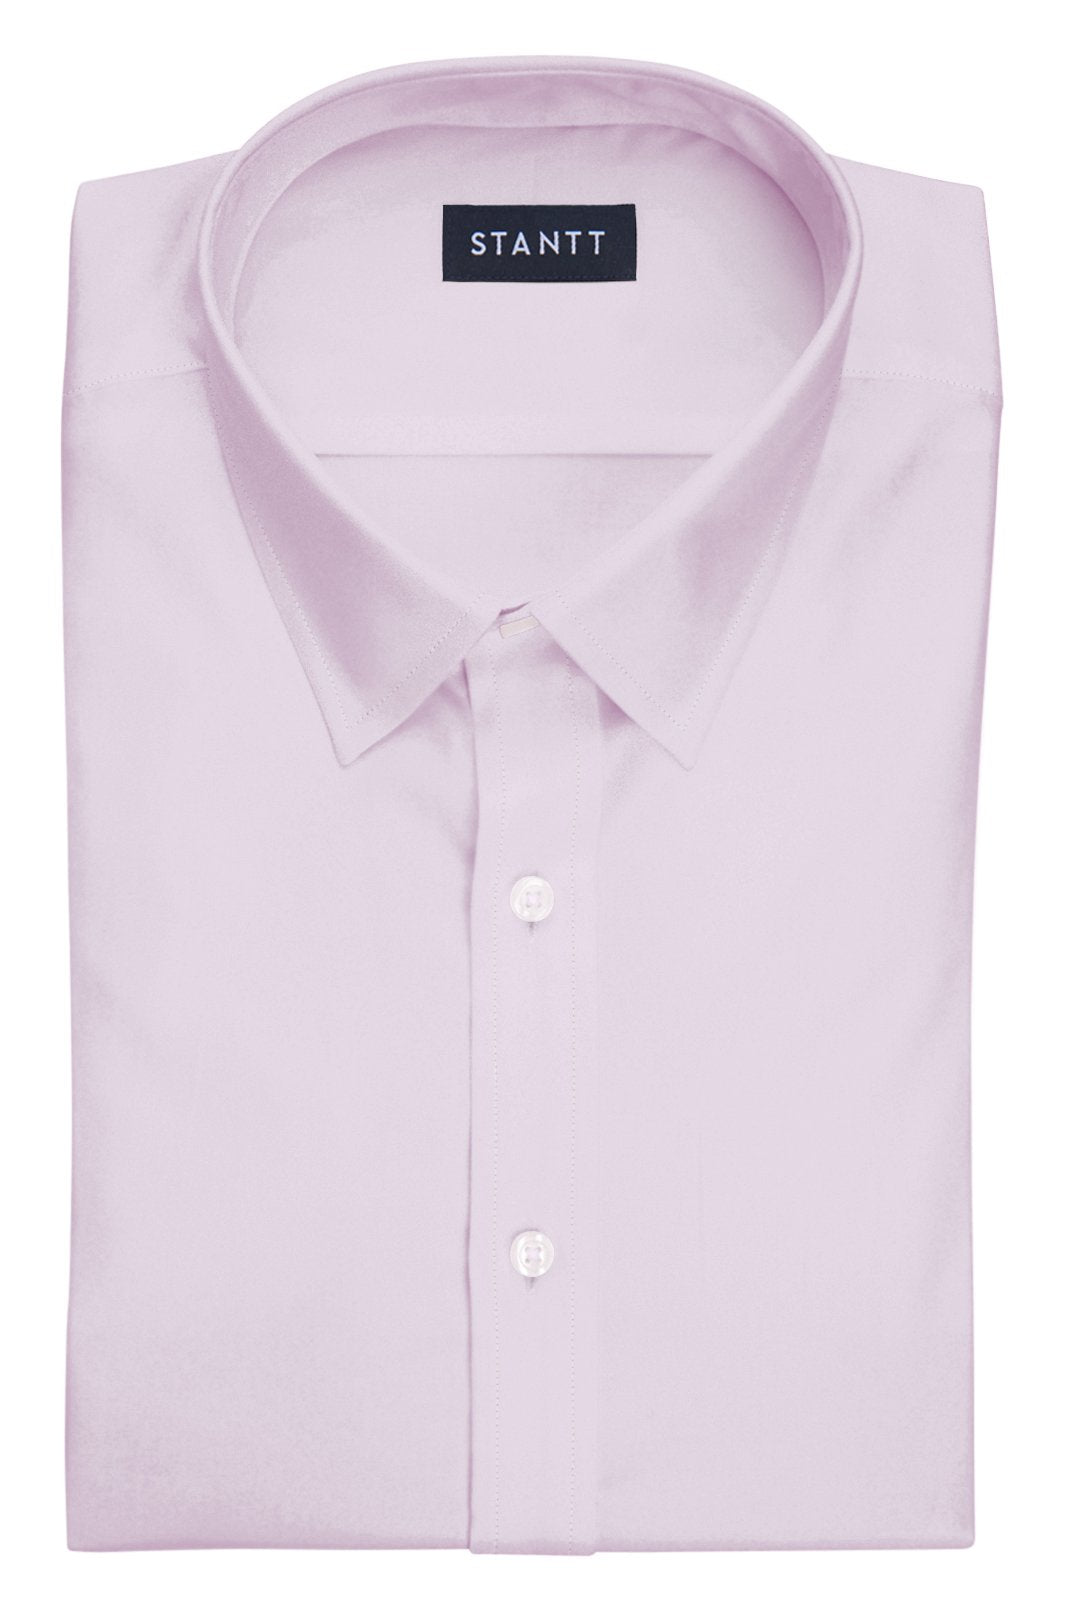 Light Pink End-on-End: Semi-Spread Collar, French Cuff